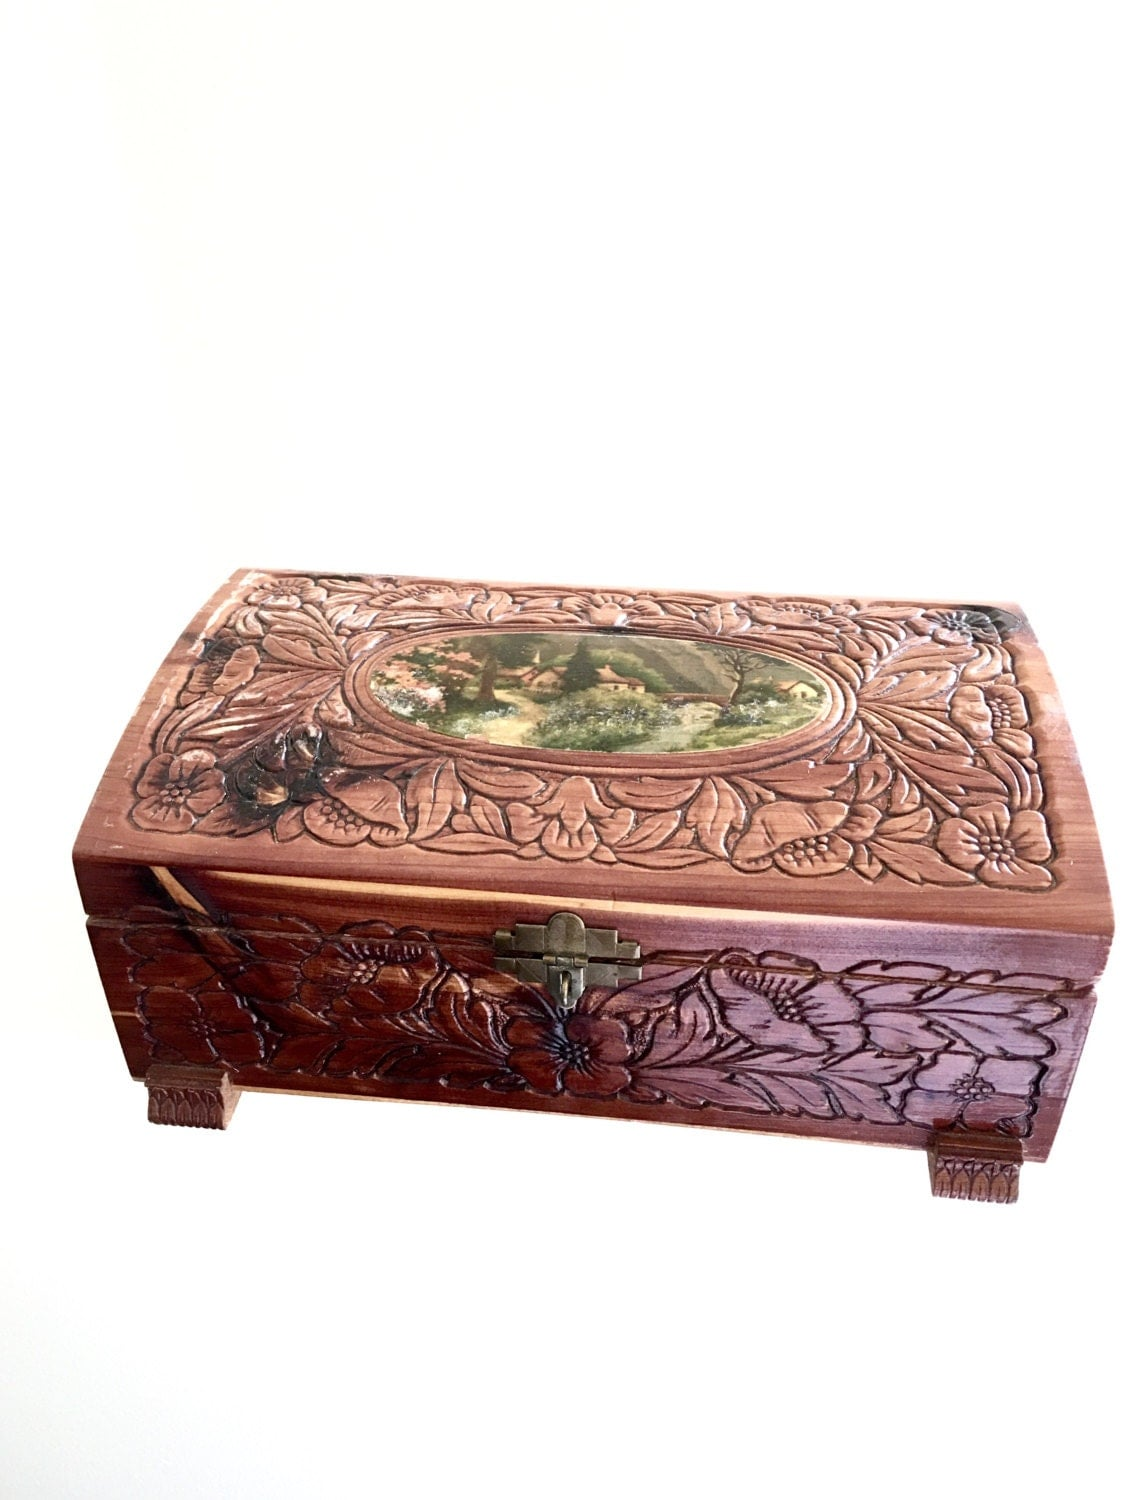 antique carved wood jewelry box small cedar chest vintage. Black Bedroom Furniture Sets. Home Design Ideas